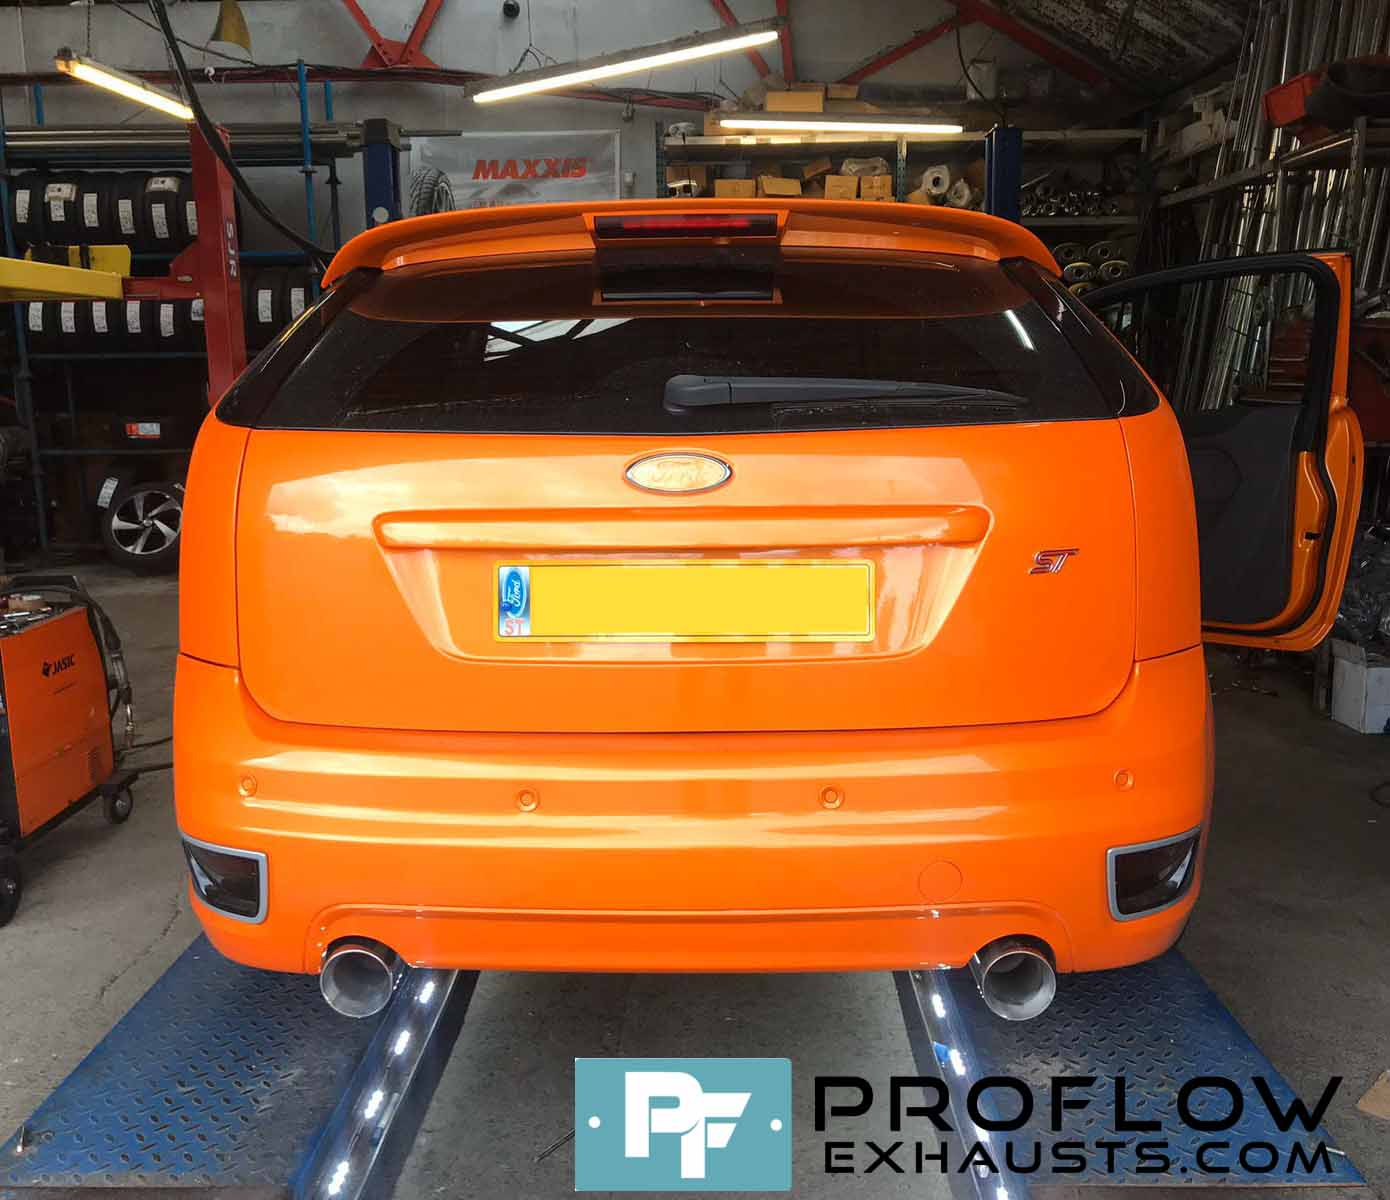 Proflow Exhausts Back Box Delete Dual Rear for Ford Focus ST